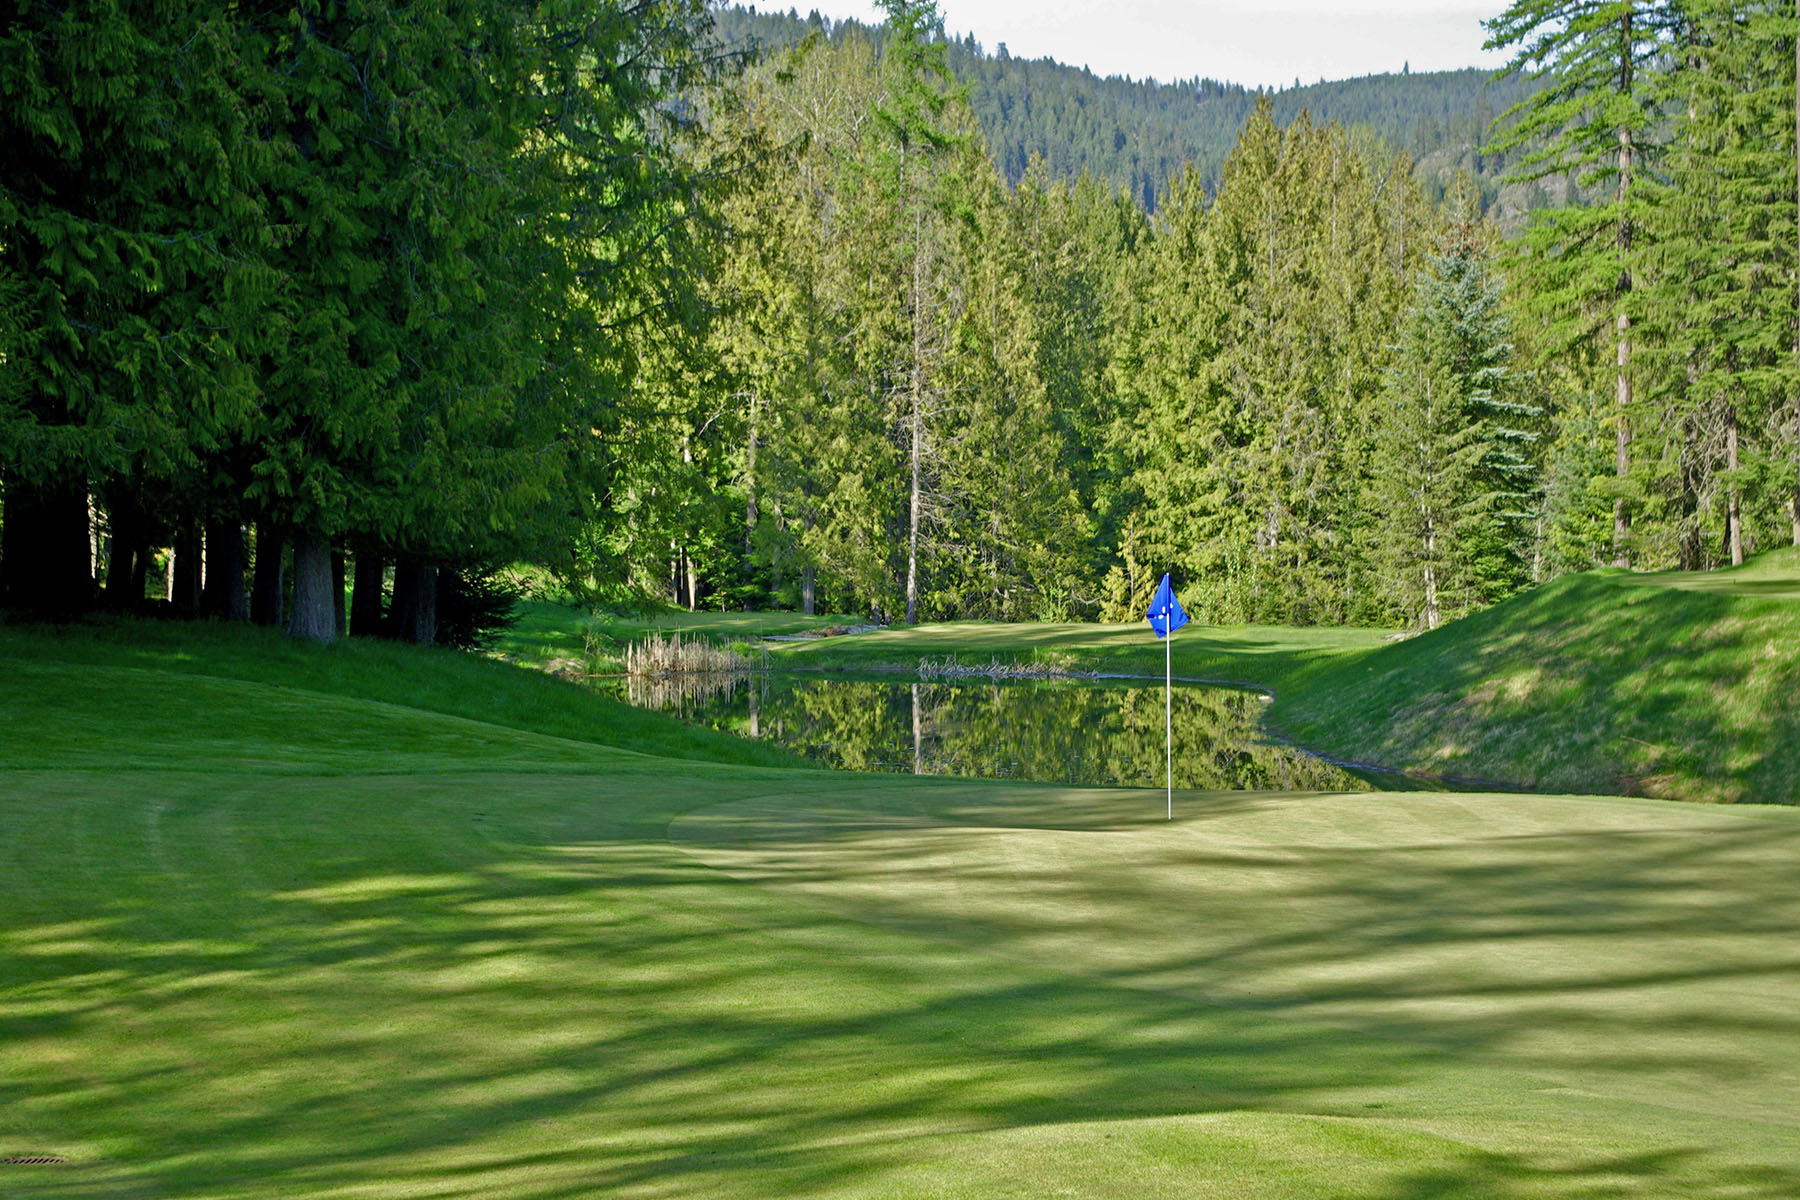 Land for Sale at The Idaho Club, Lot D-1 Lot 1 Blk 9 3rd S Idaho Club Drive Sandpoint, Idaho 83864 United States